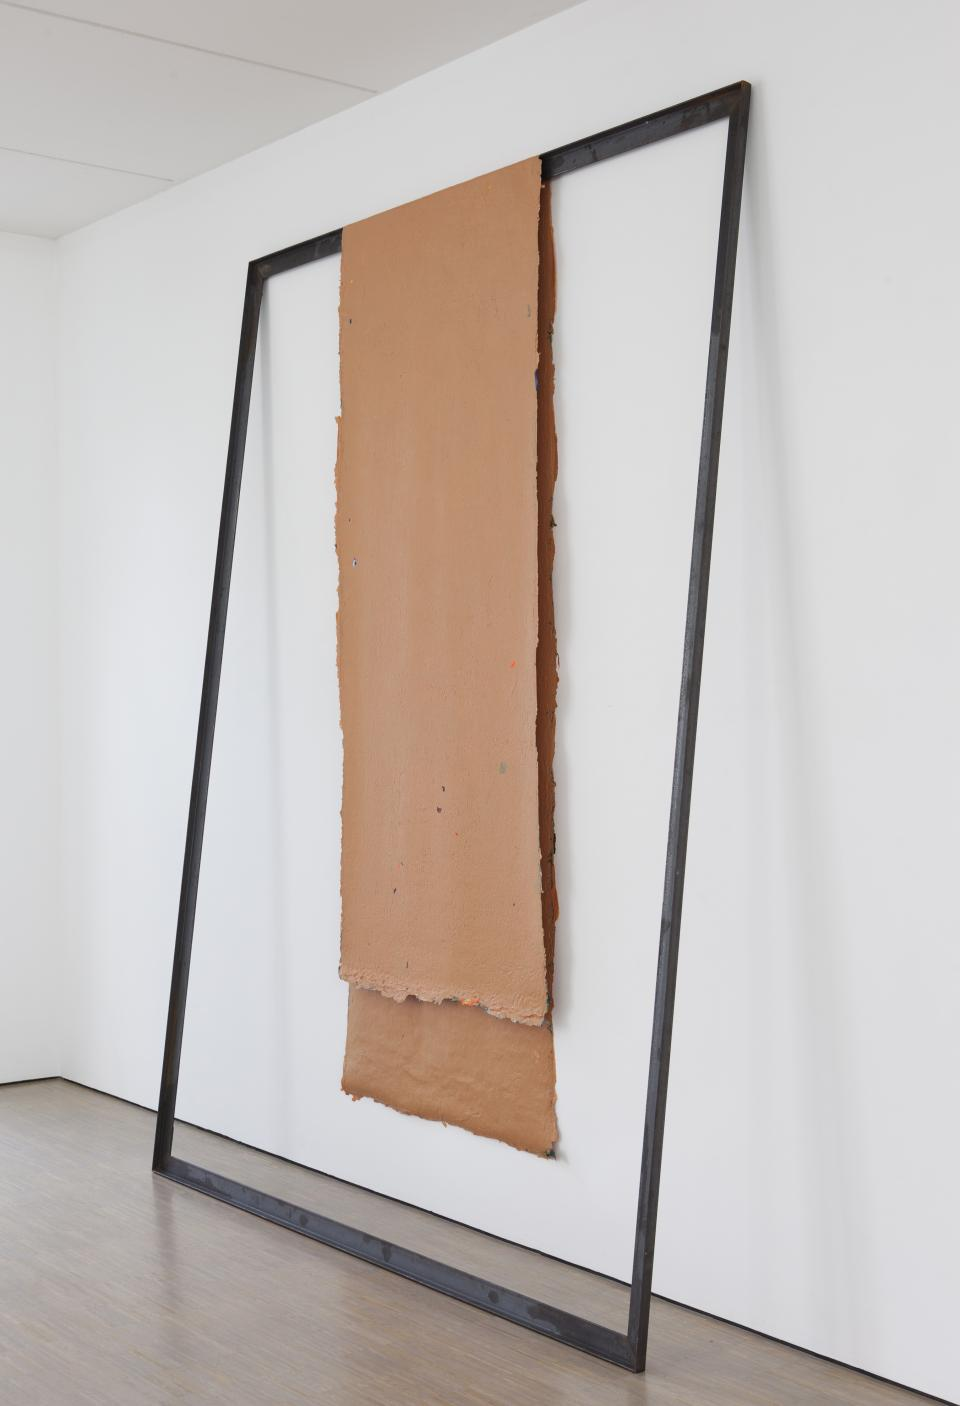 no title (120915), 2015, acrylic paint, angle steel,290 x 220 cm